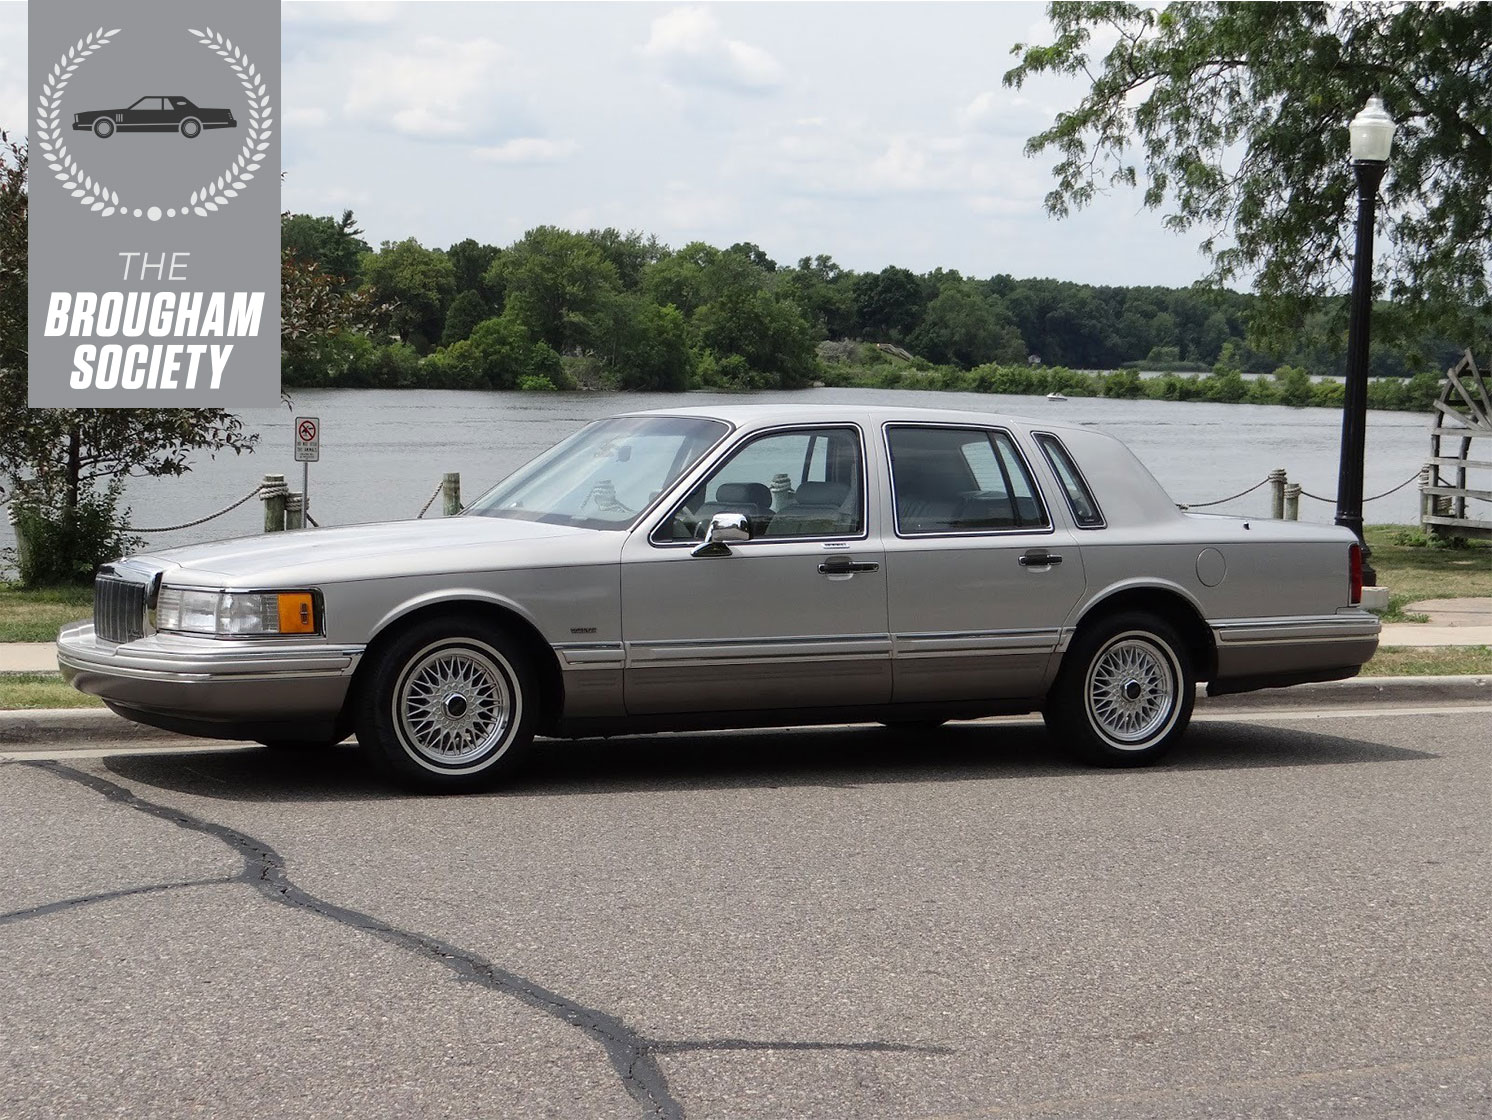 The 1991 Lincoln Town Car Cartier was travel on a grander scale